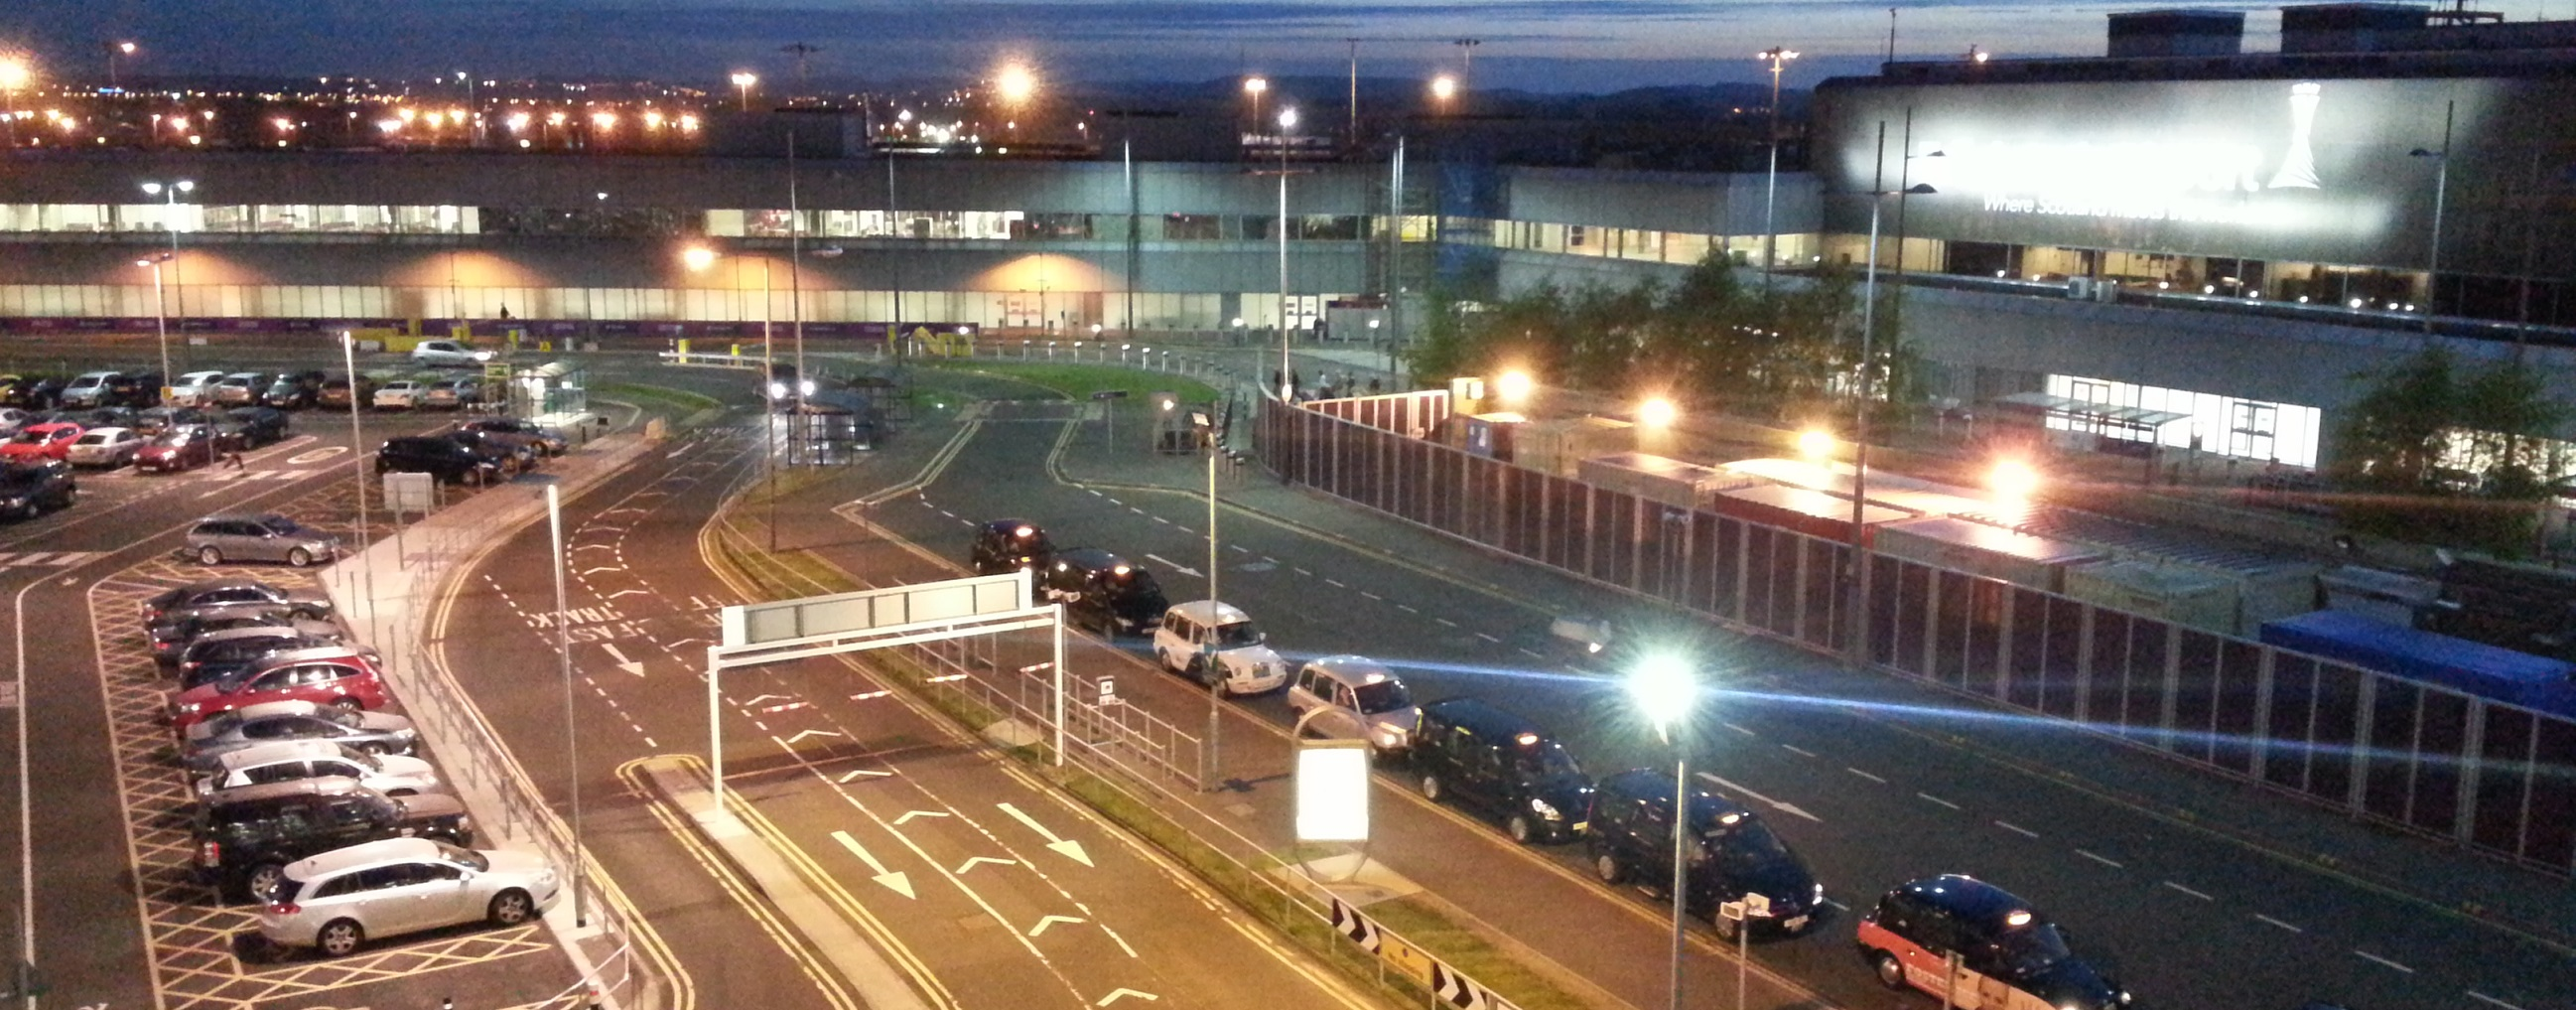 Edinburgh_Airport_-_Taxi_rank